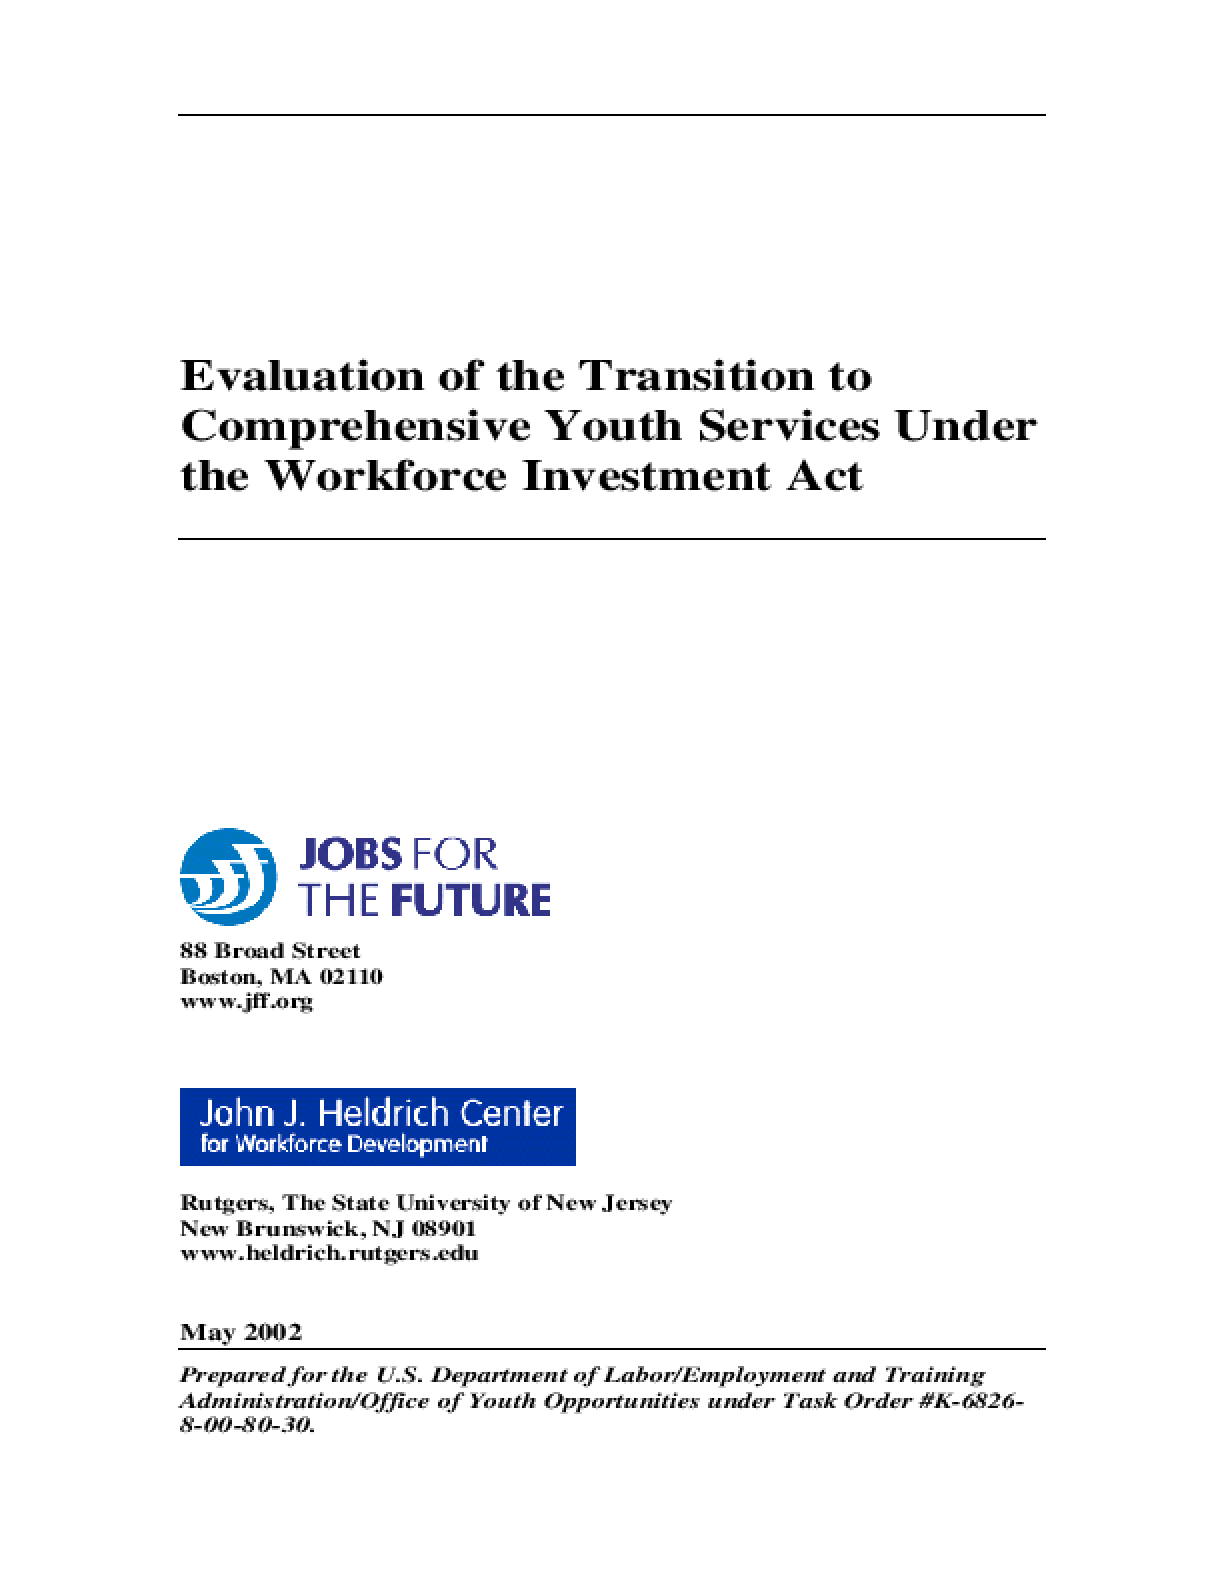 Evaluation of the Transition to Comprehensive Youth Services Under WIA